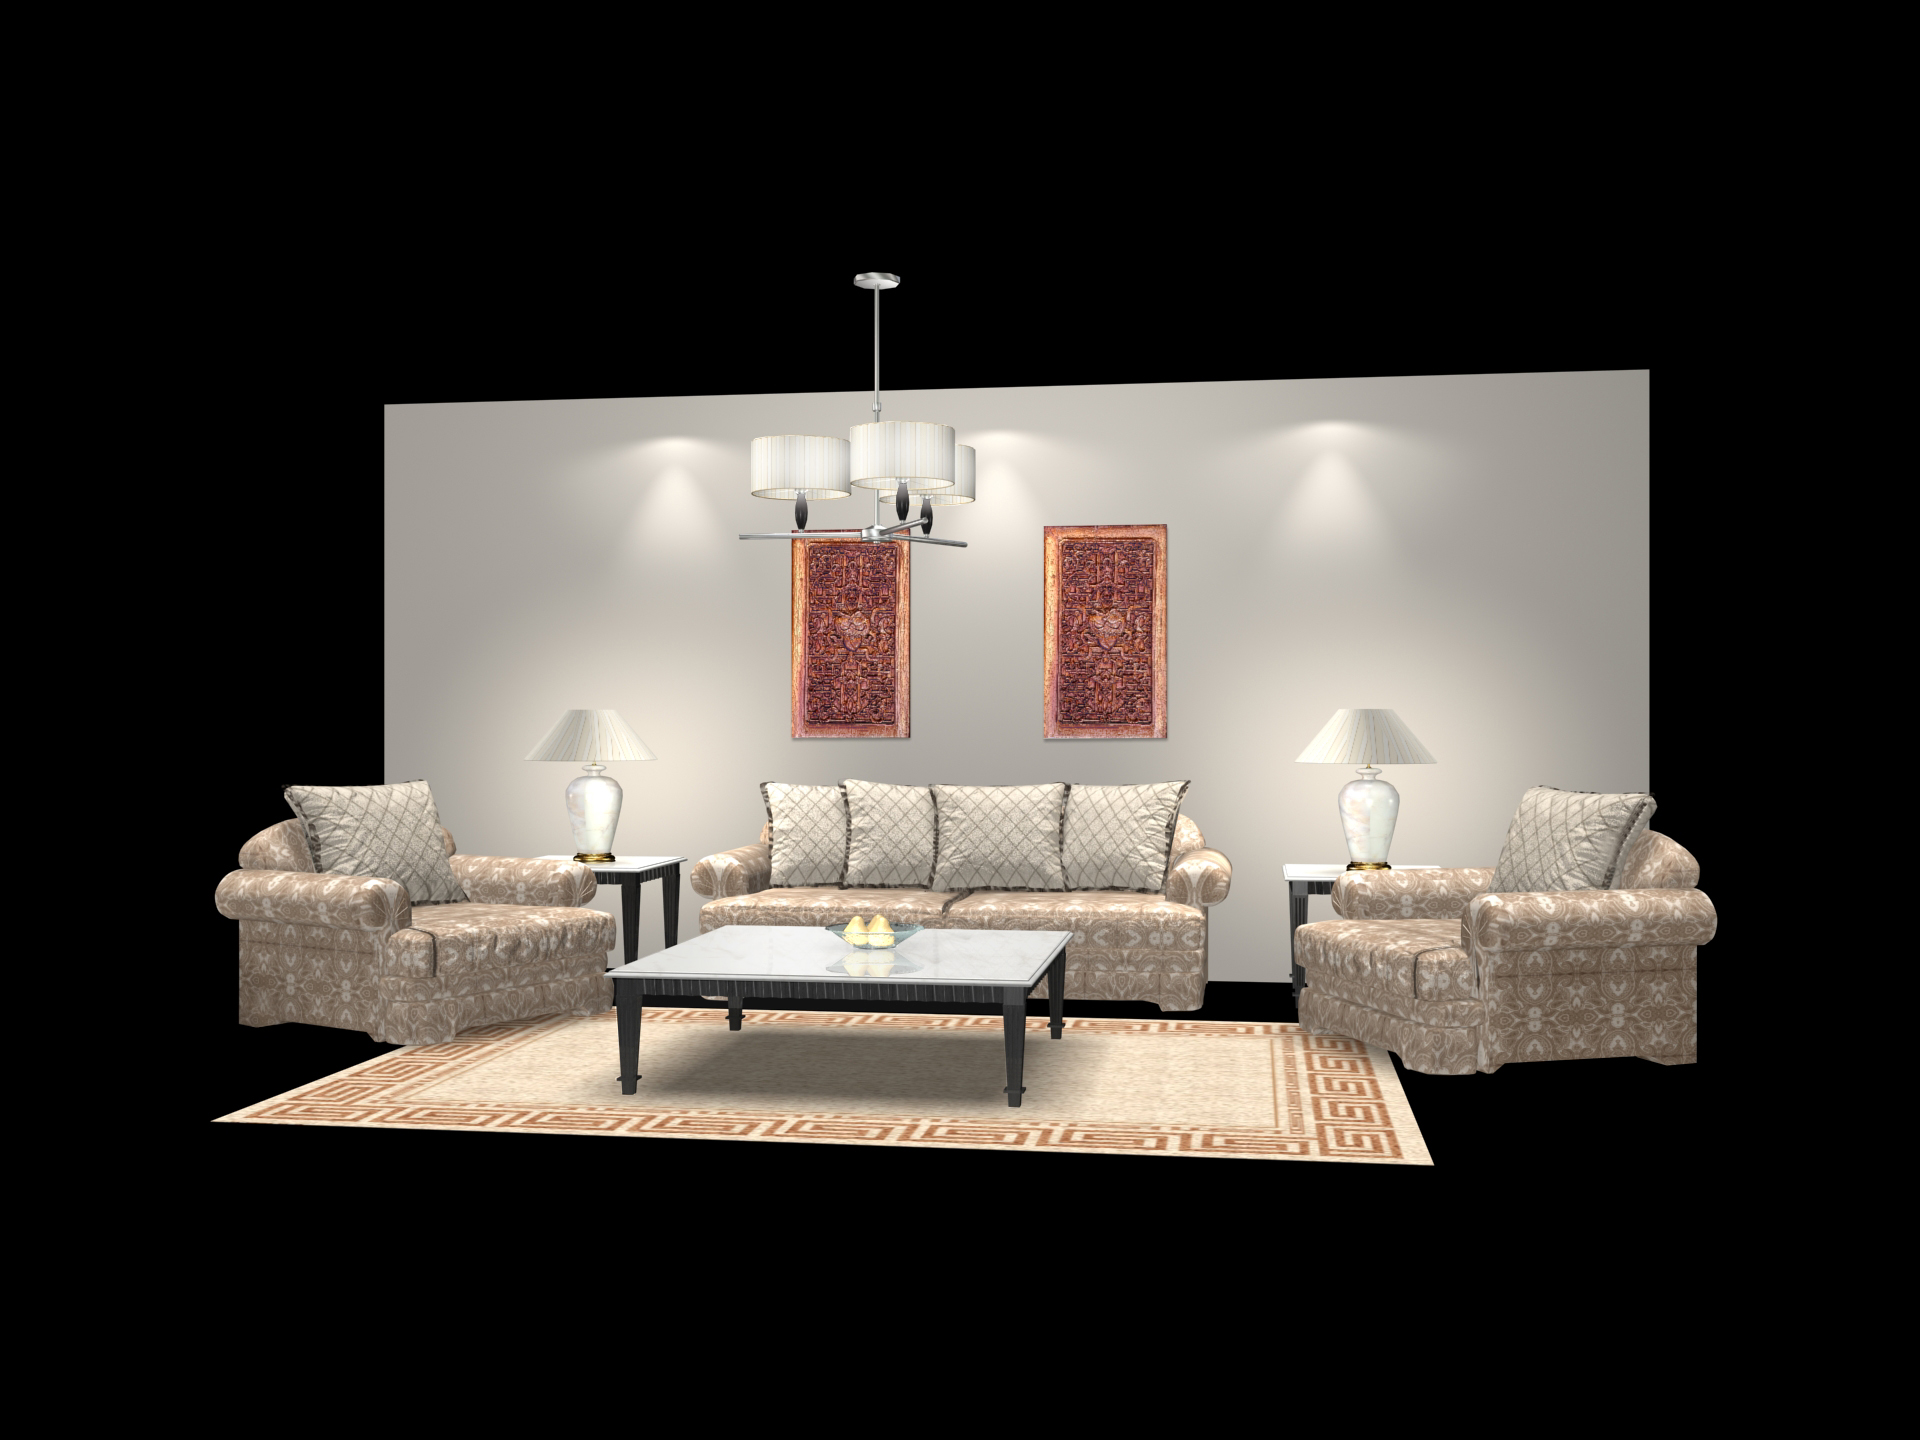 Muebles sas 001 3d model download free 3d models download for Muebles 3d gratis